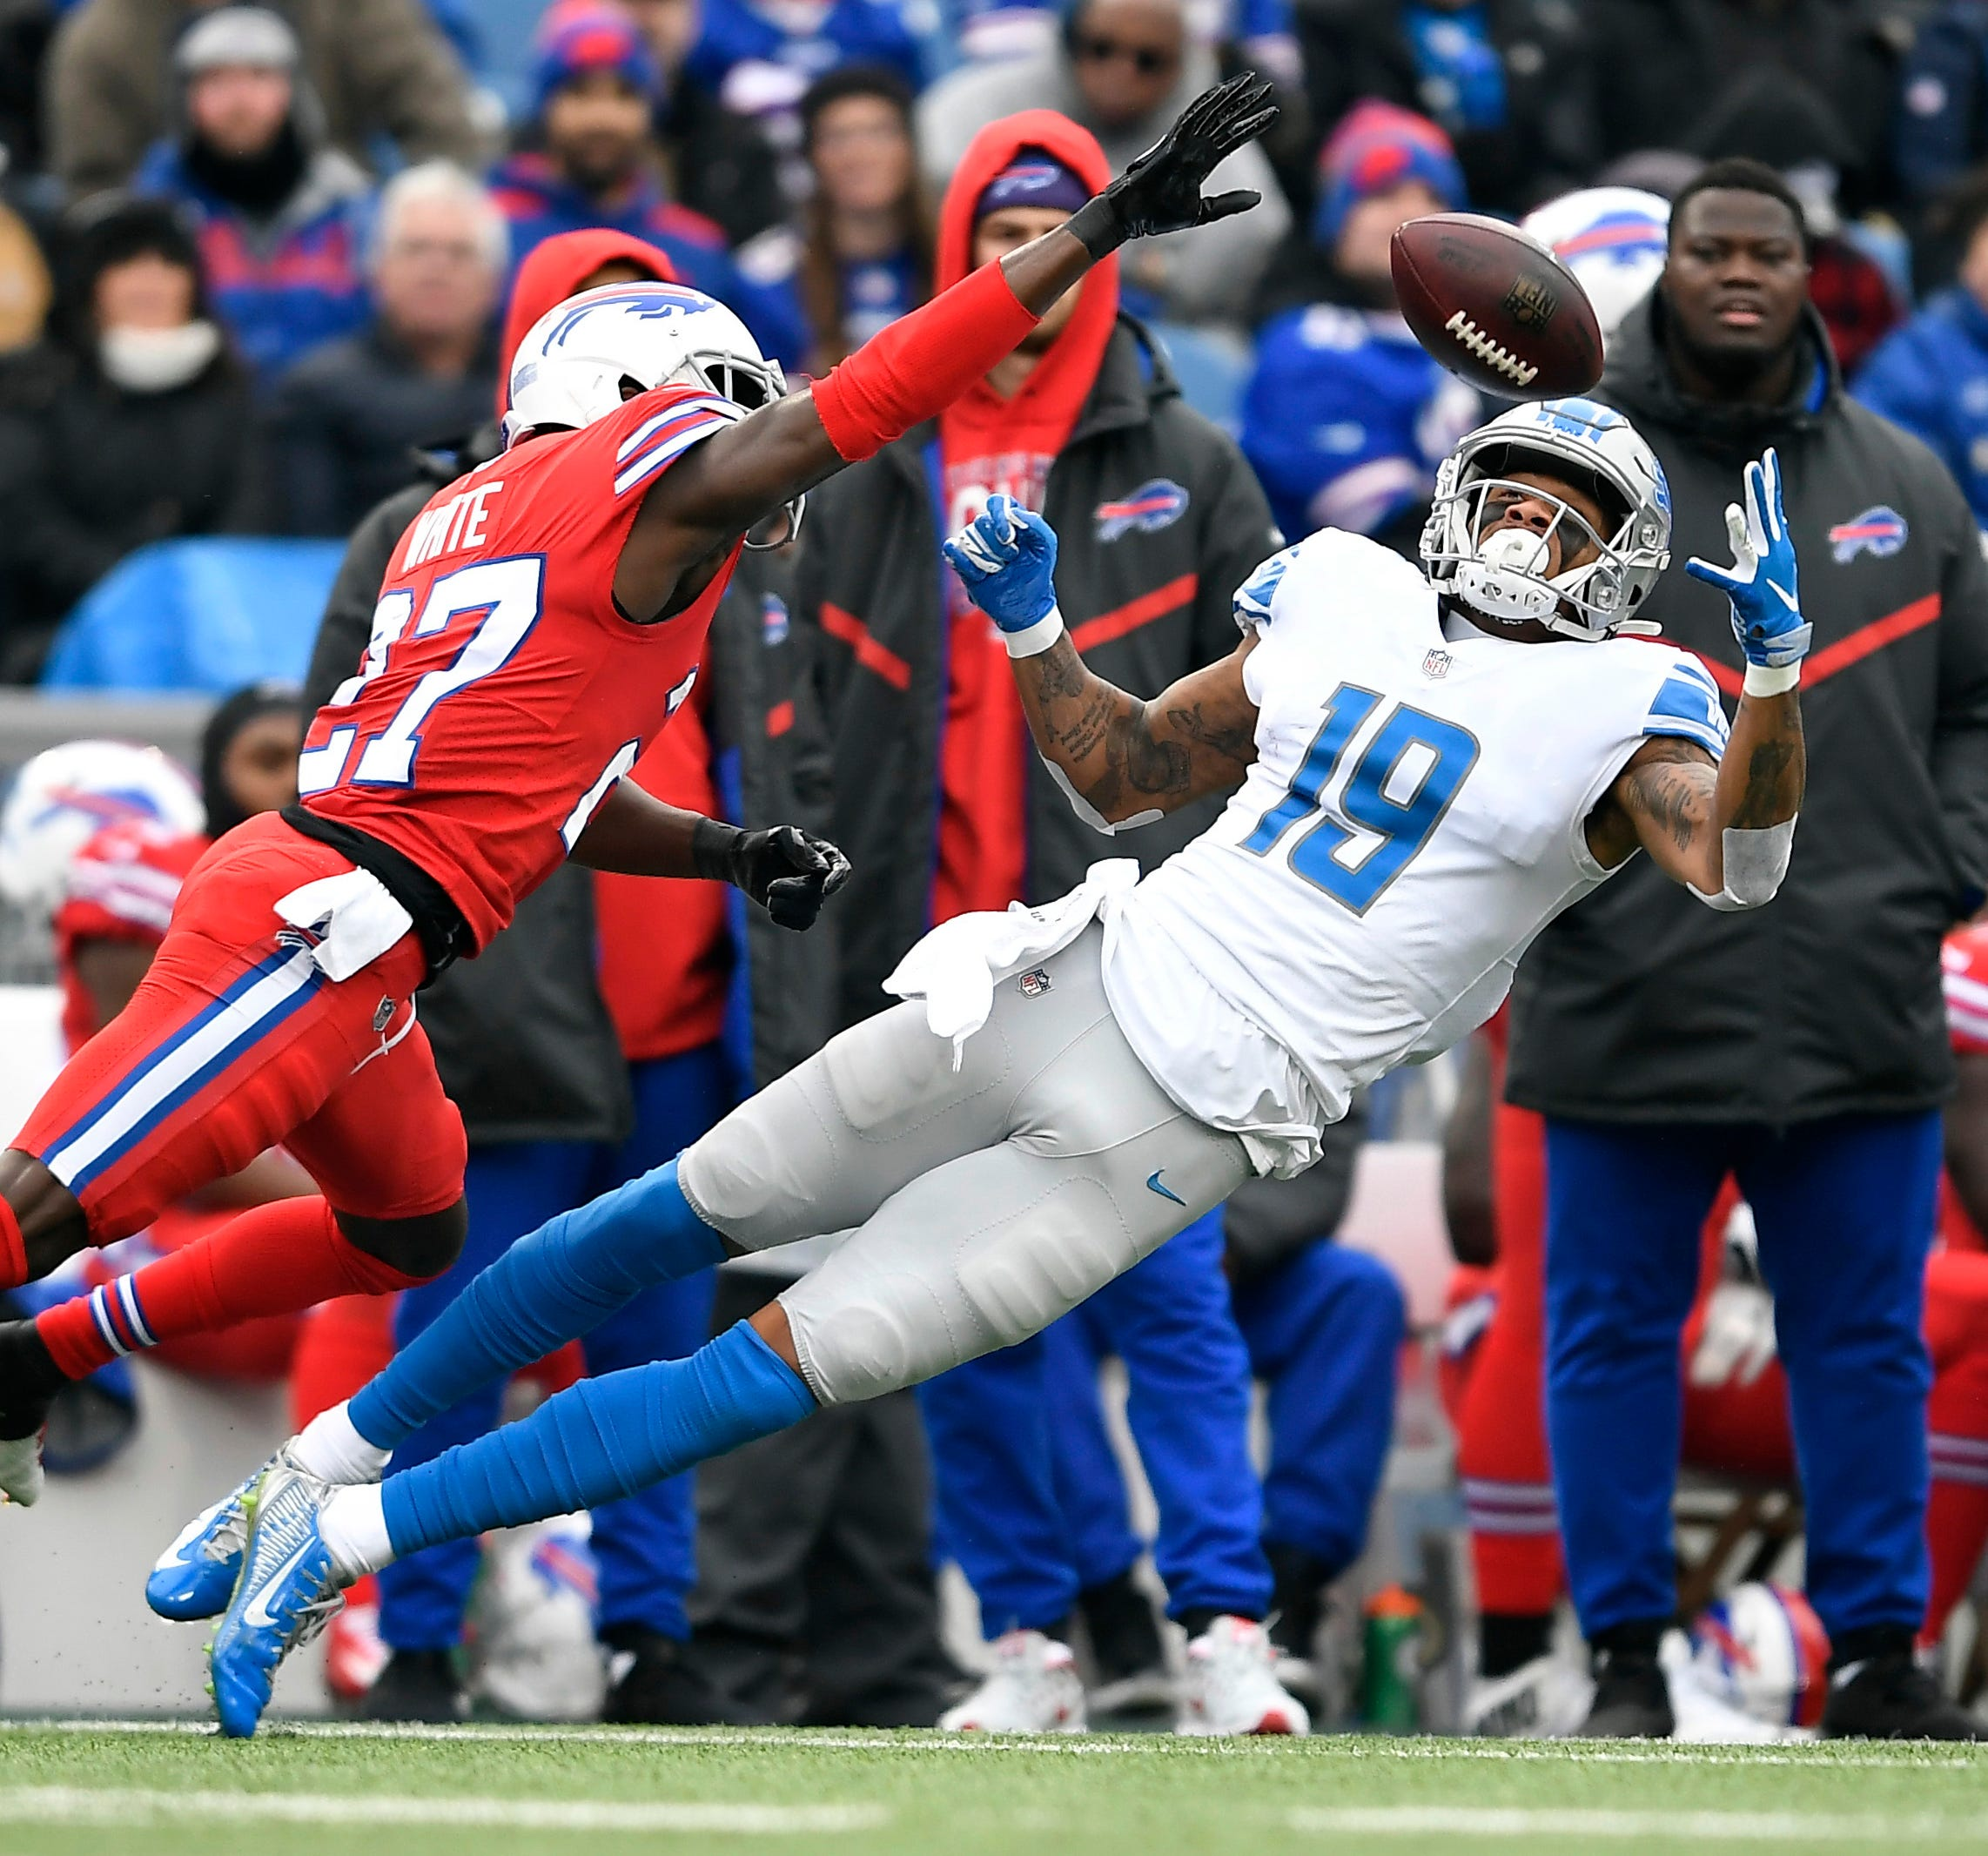 Kenny Golladay catches a pass against Bills cornerback Tre'Davious White earlier this season.